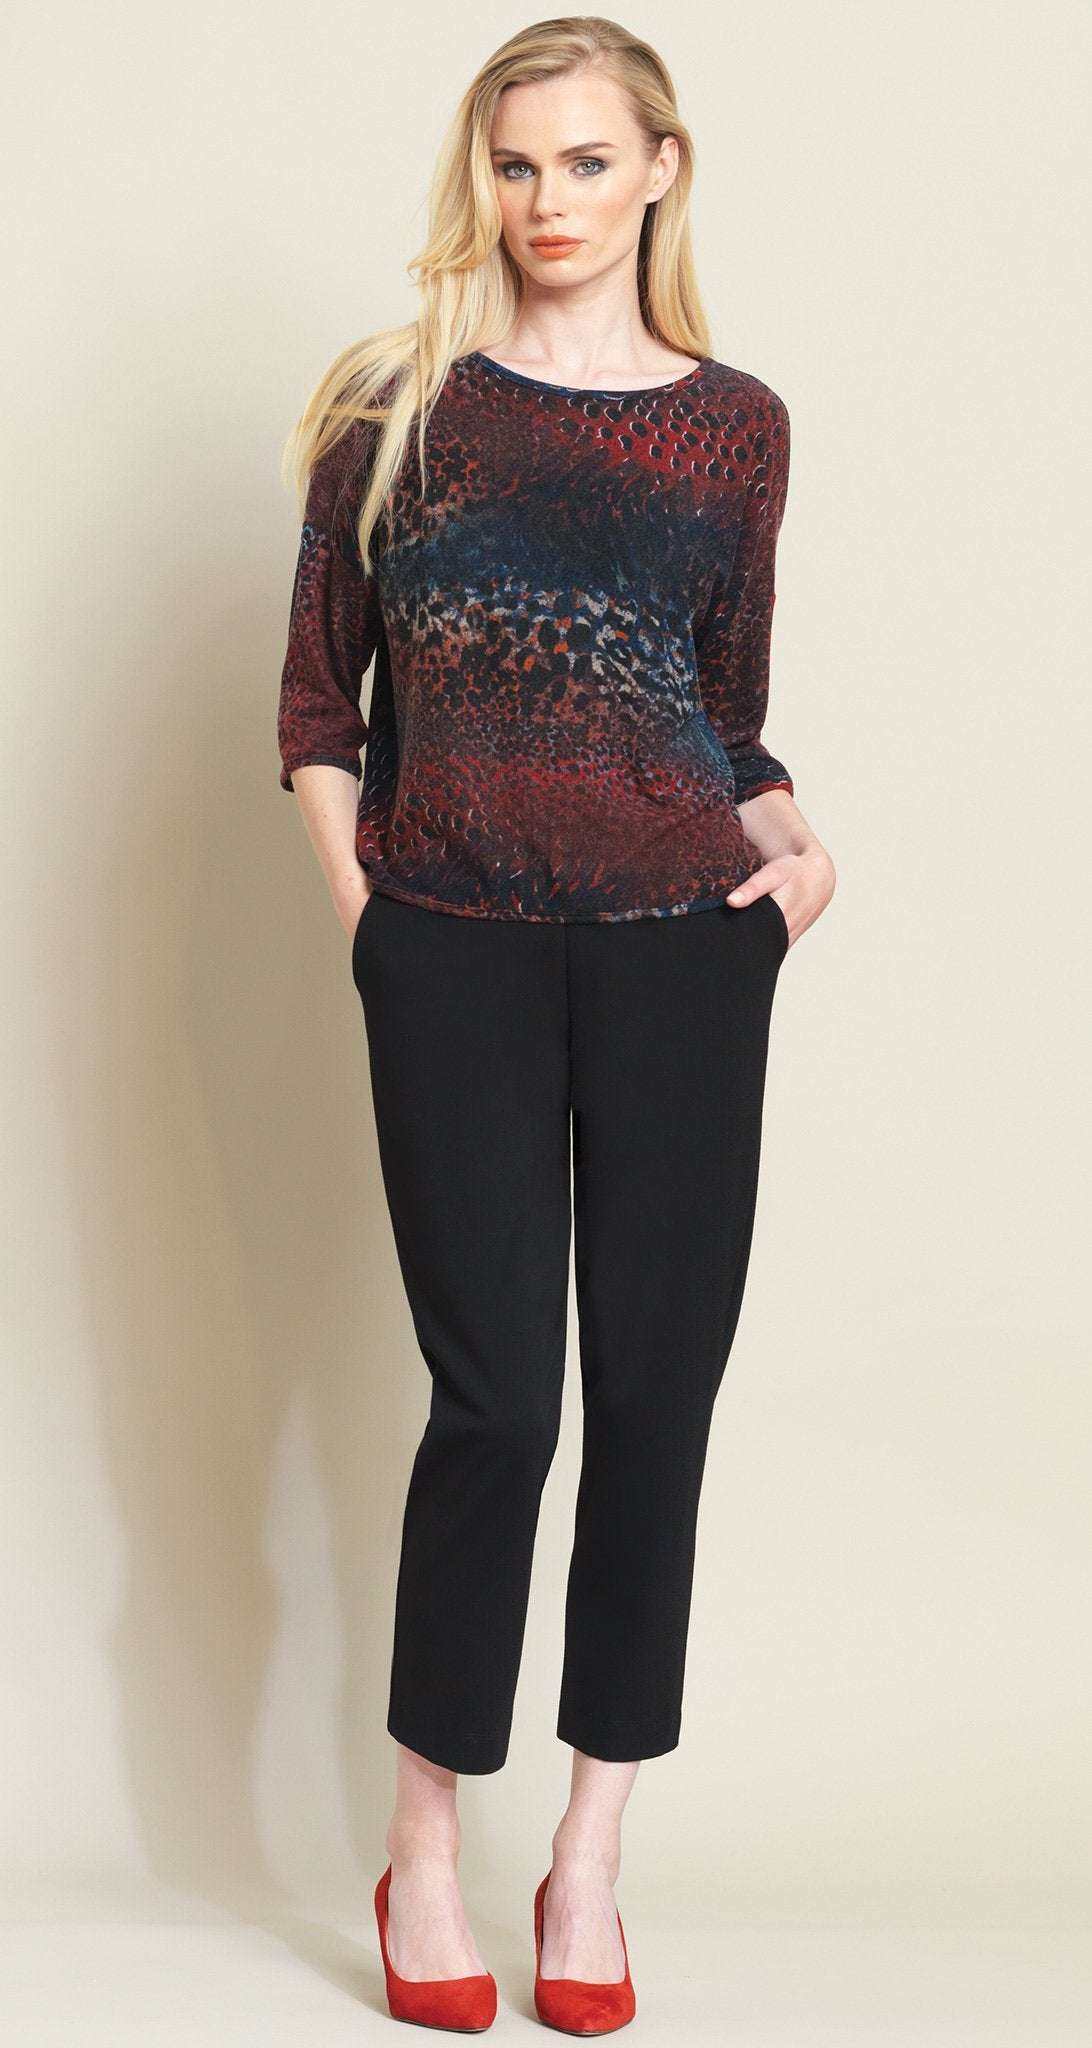 Animal Print Sweater Box Top - Merlot Multi - Clara Sunwoo